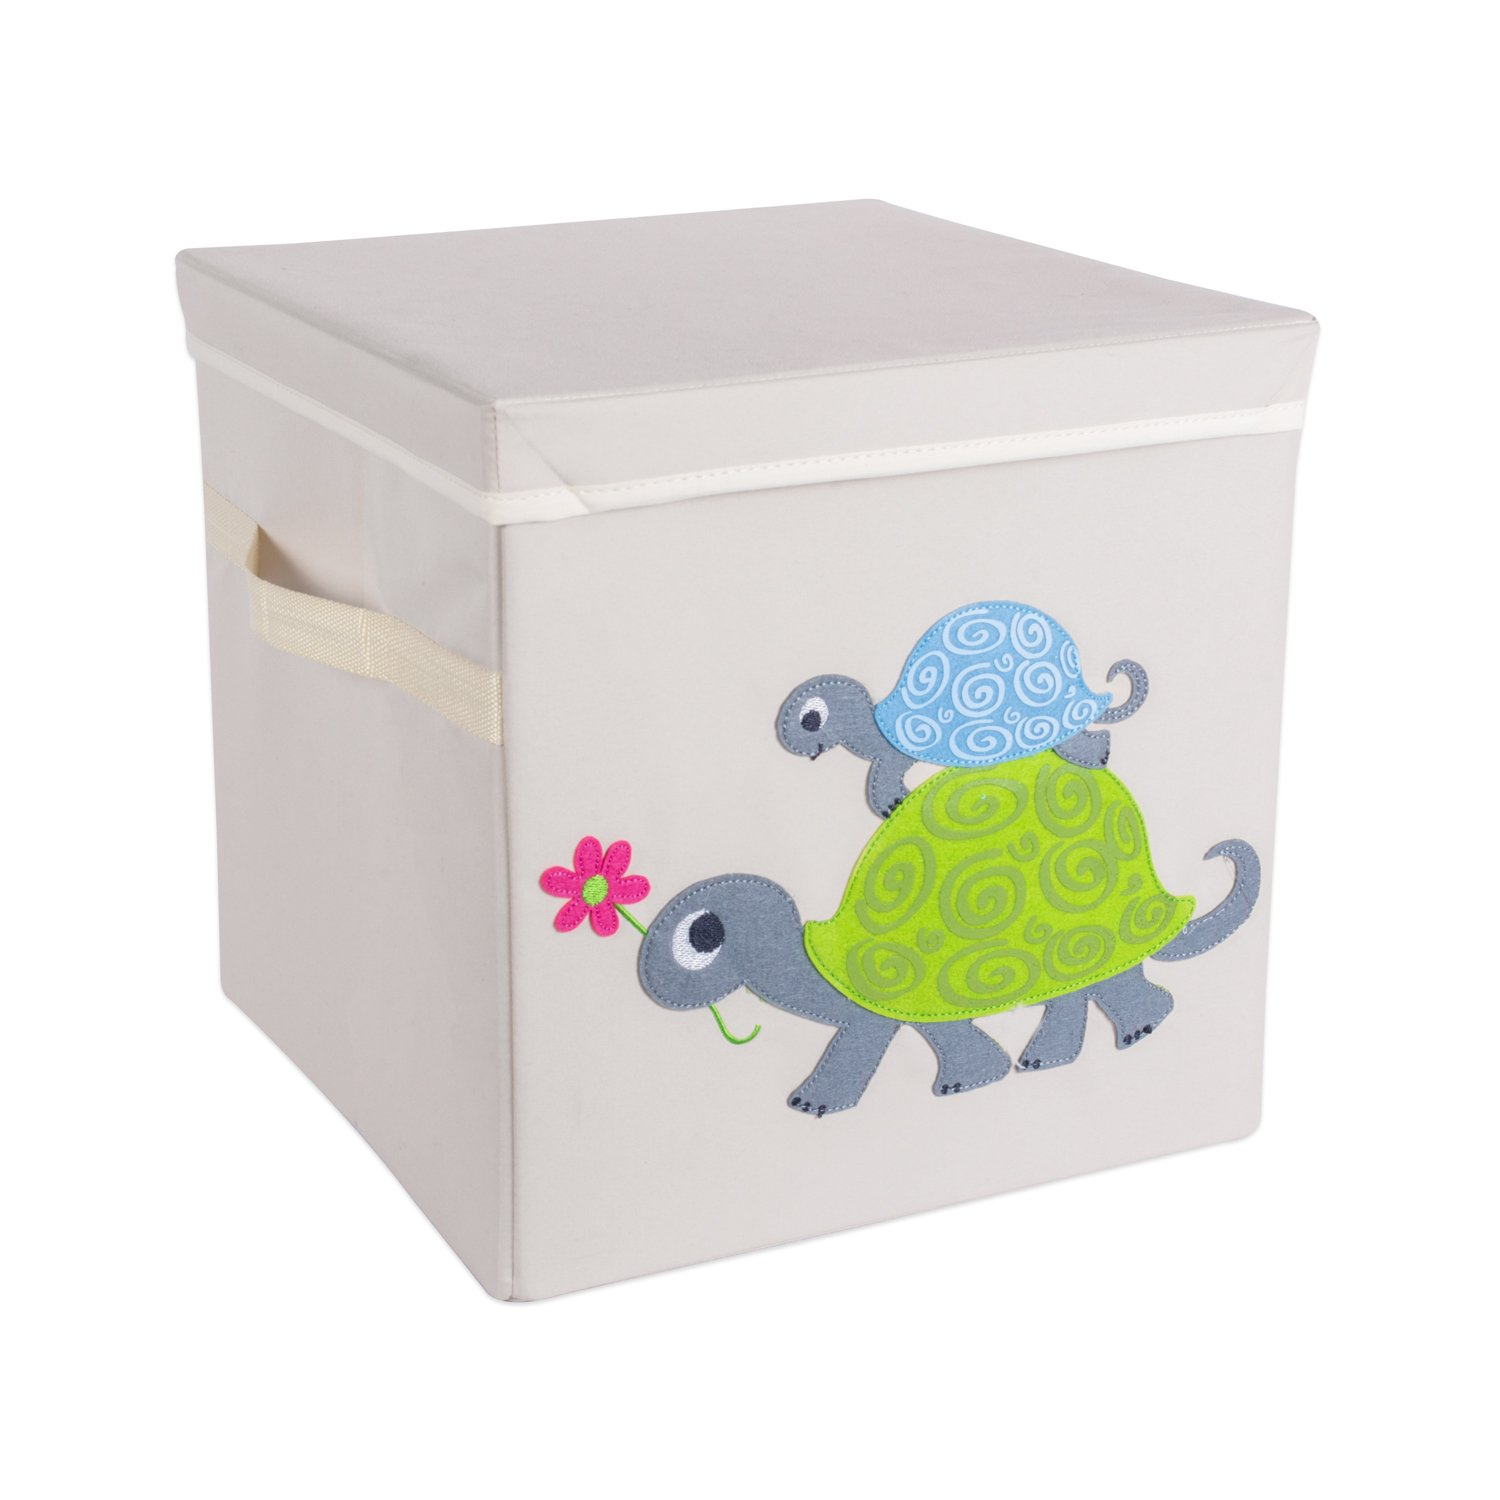 DII Nursery or Playroom Storage Bins with Lids, Made To Fit Standard Cube Organizers, use for Toys, Clothing, Blankets, Books, & More (13x13x13'') – Turtle